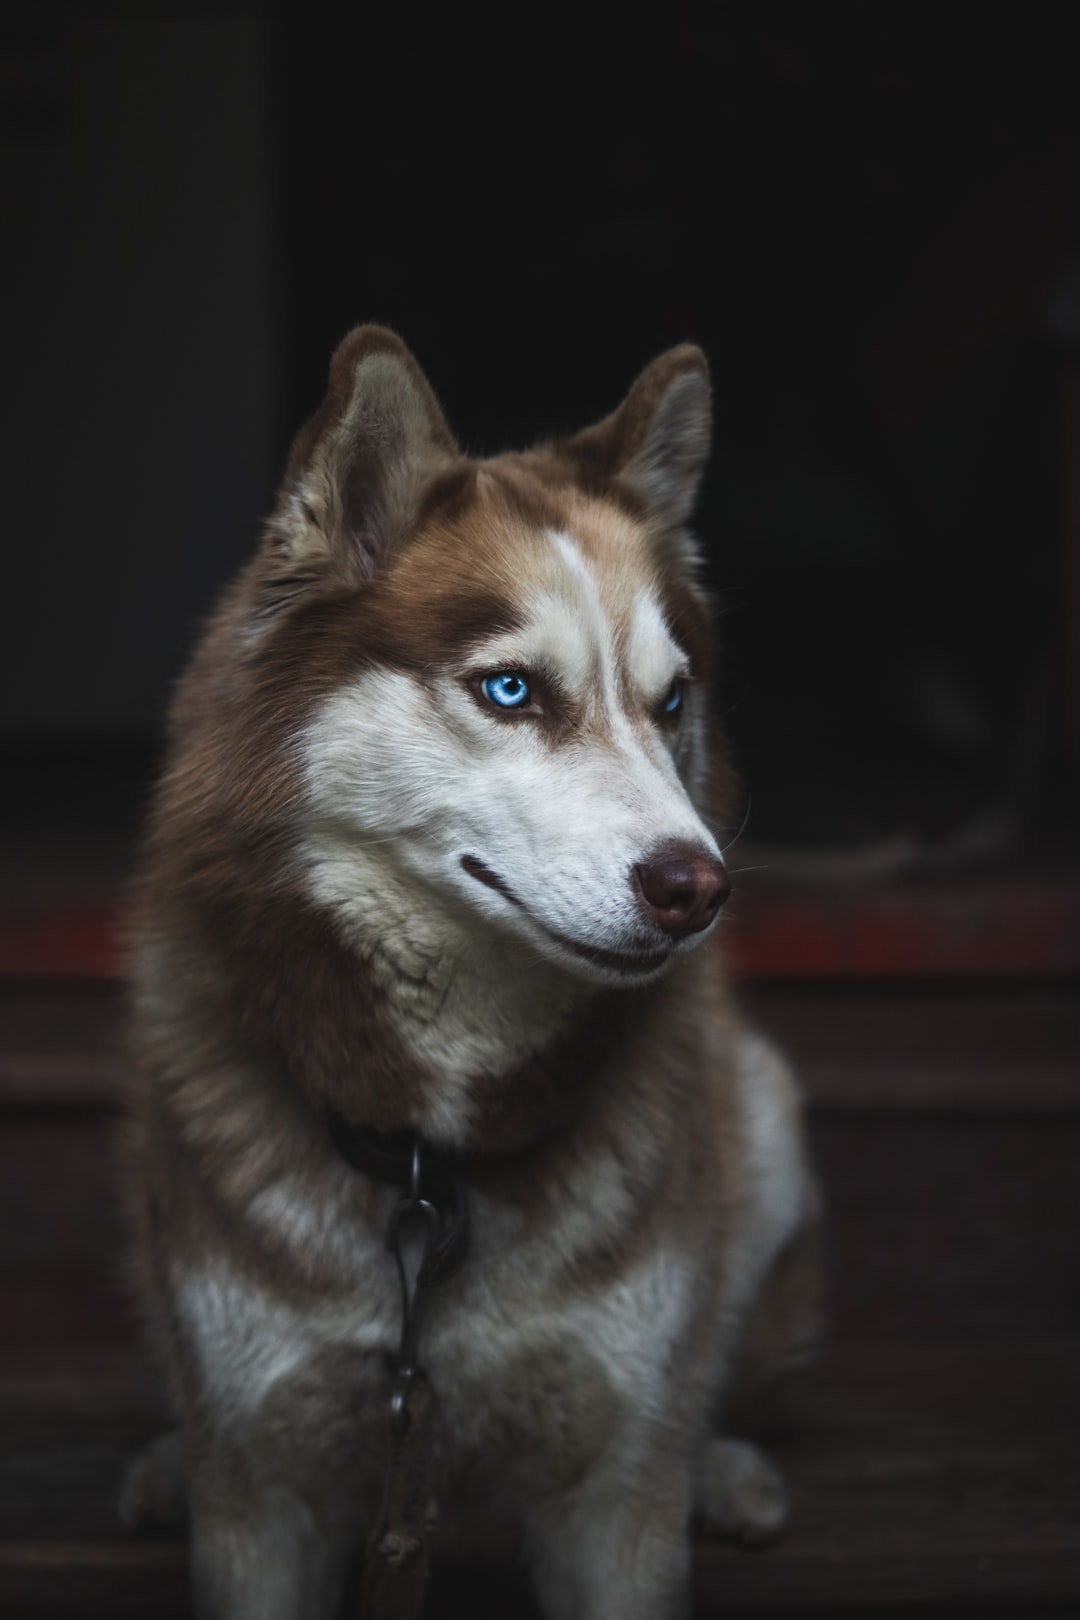 Good-looking husky portrait with her charming eyes